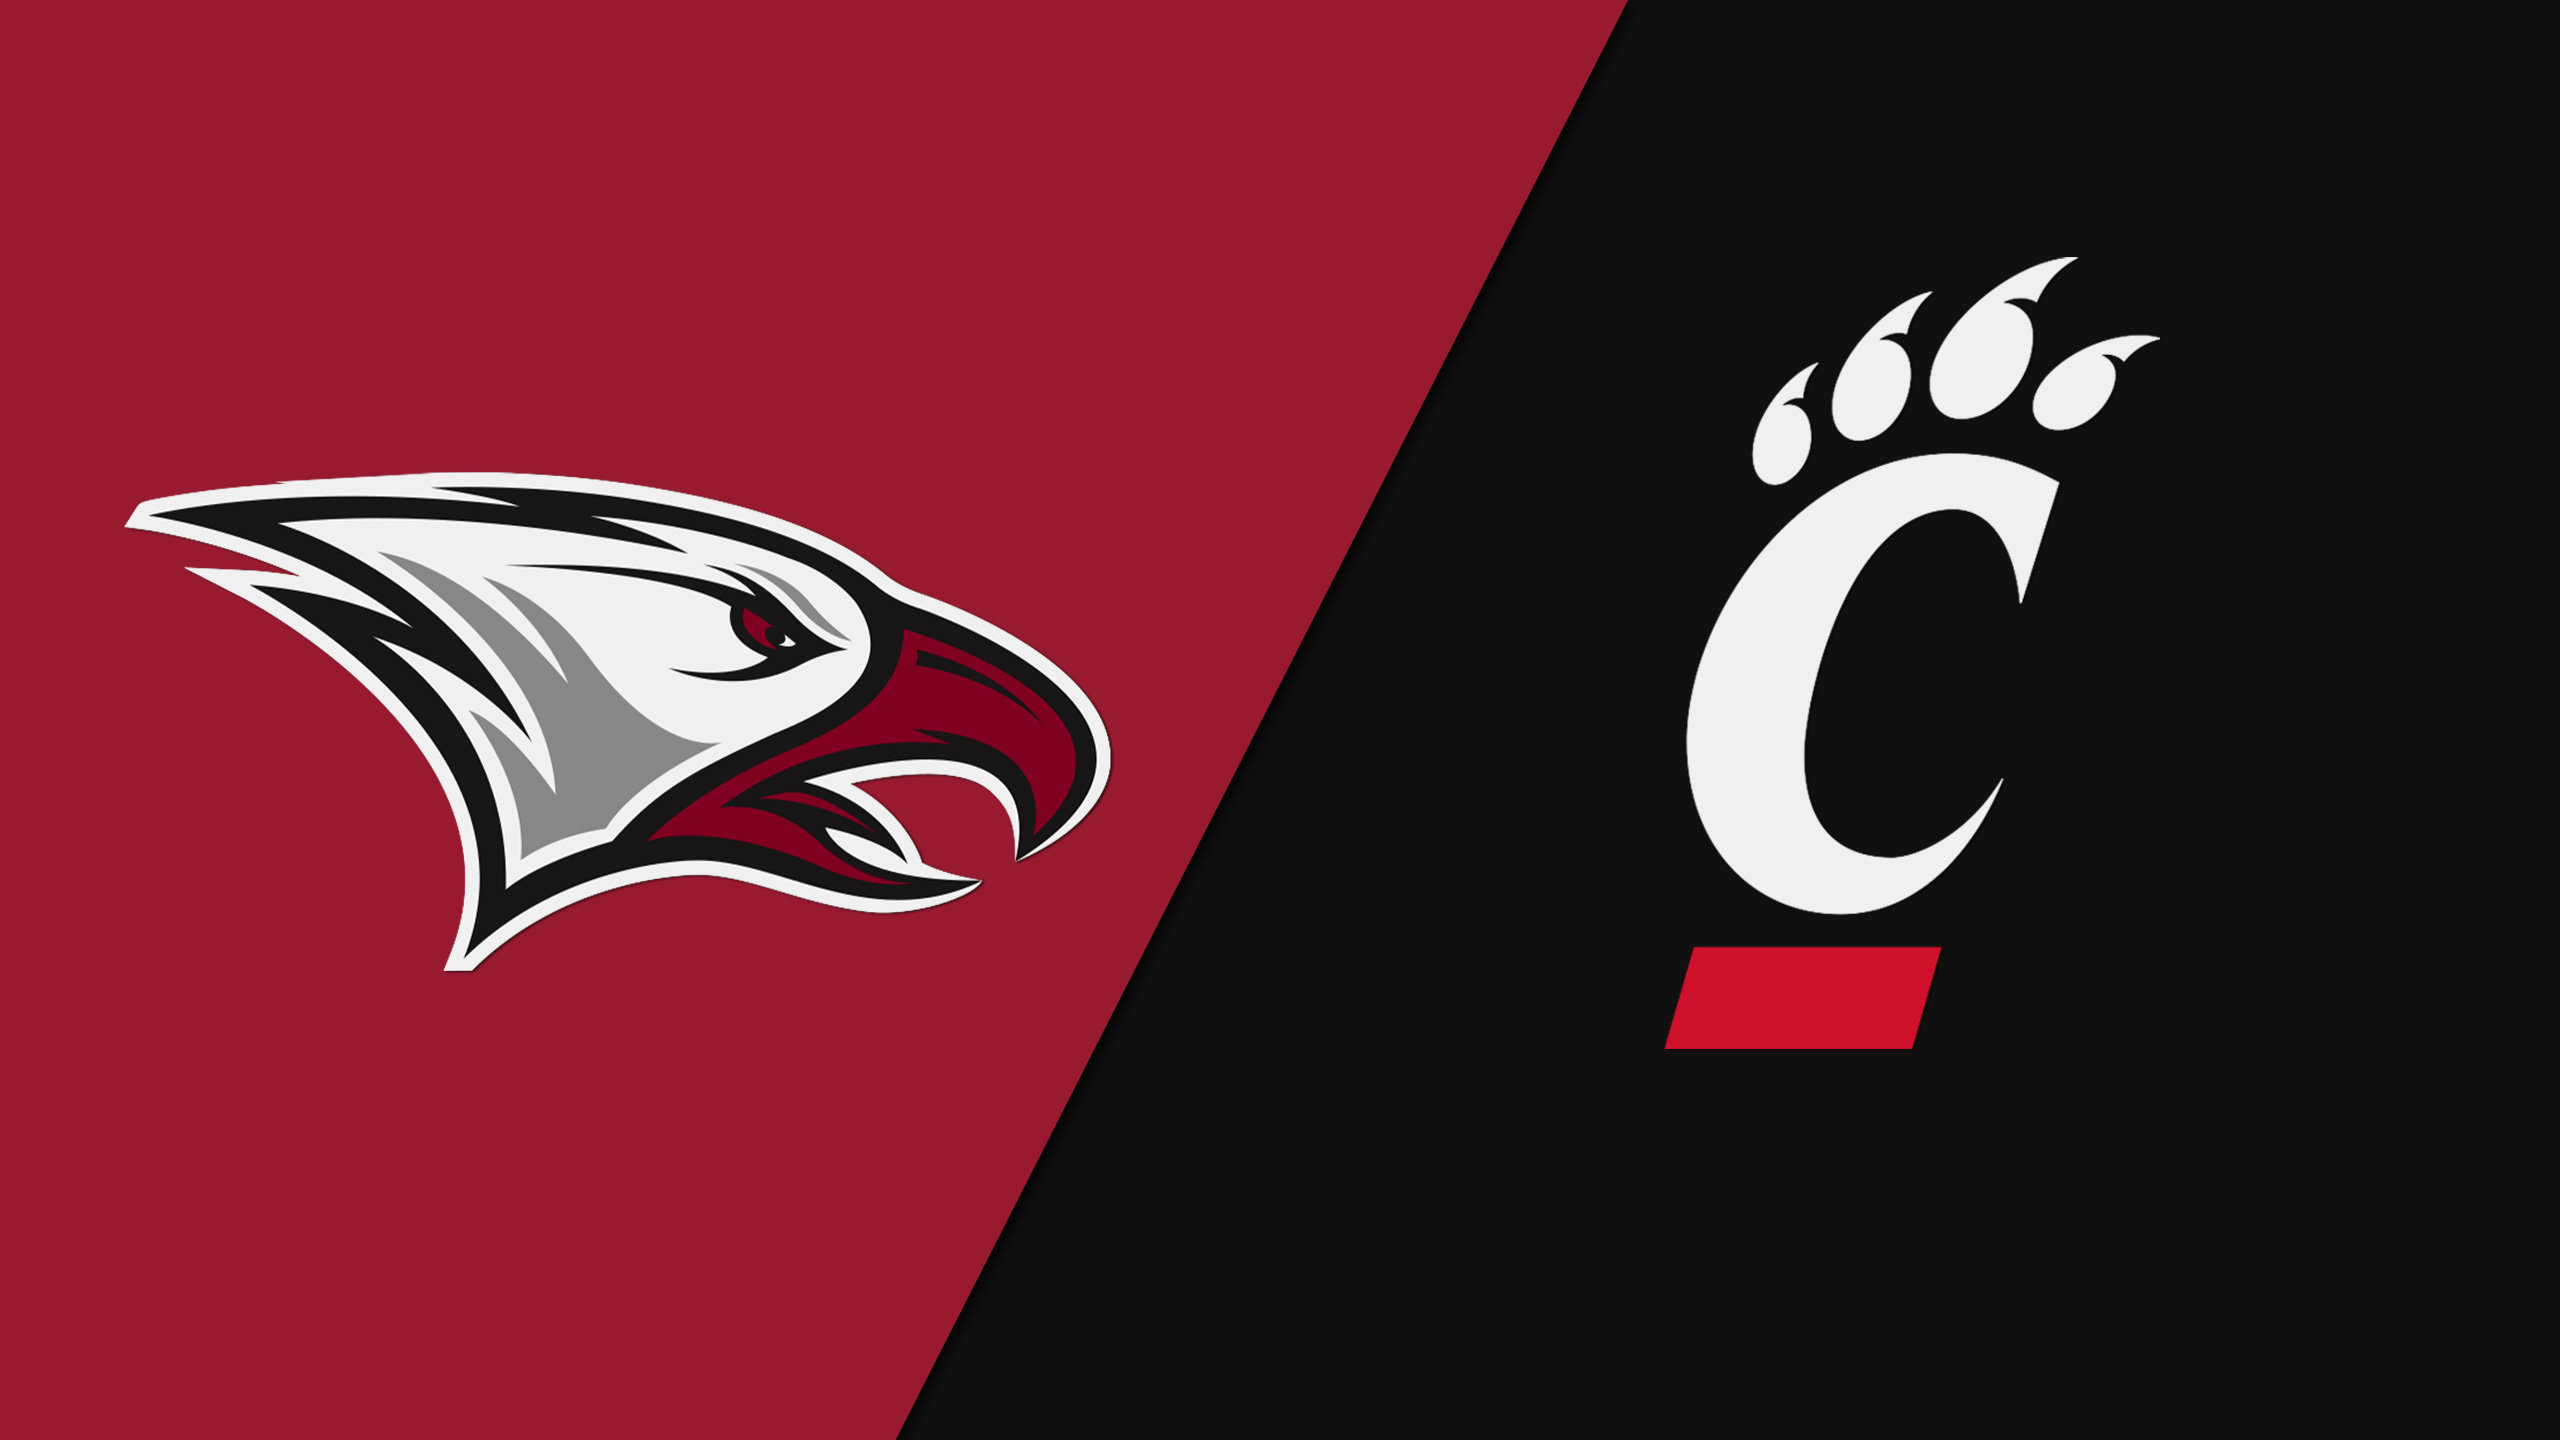 North Carolina Central vs. Cincinnati (M Basketball)